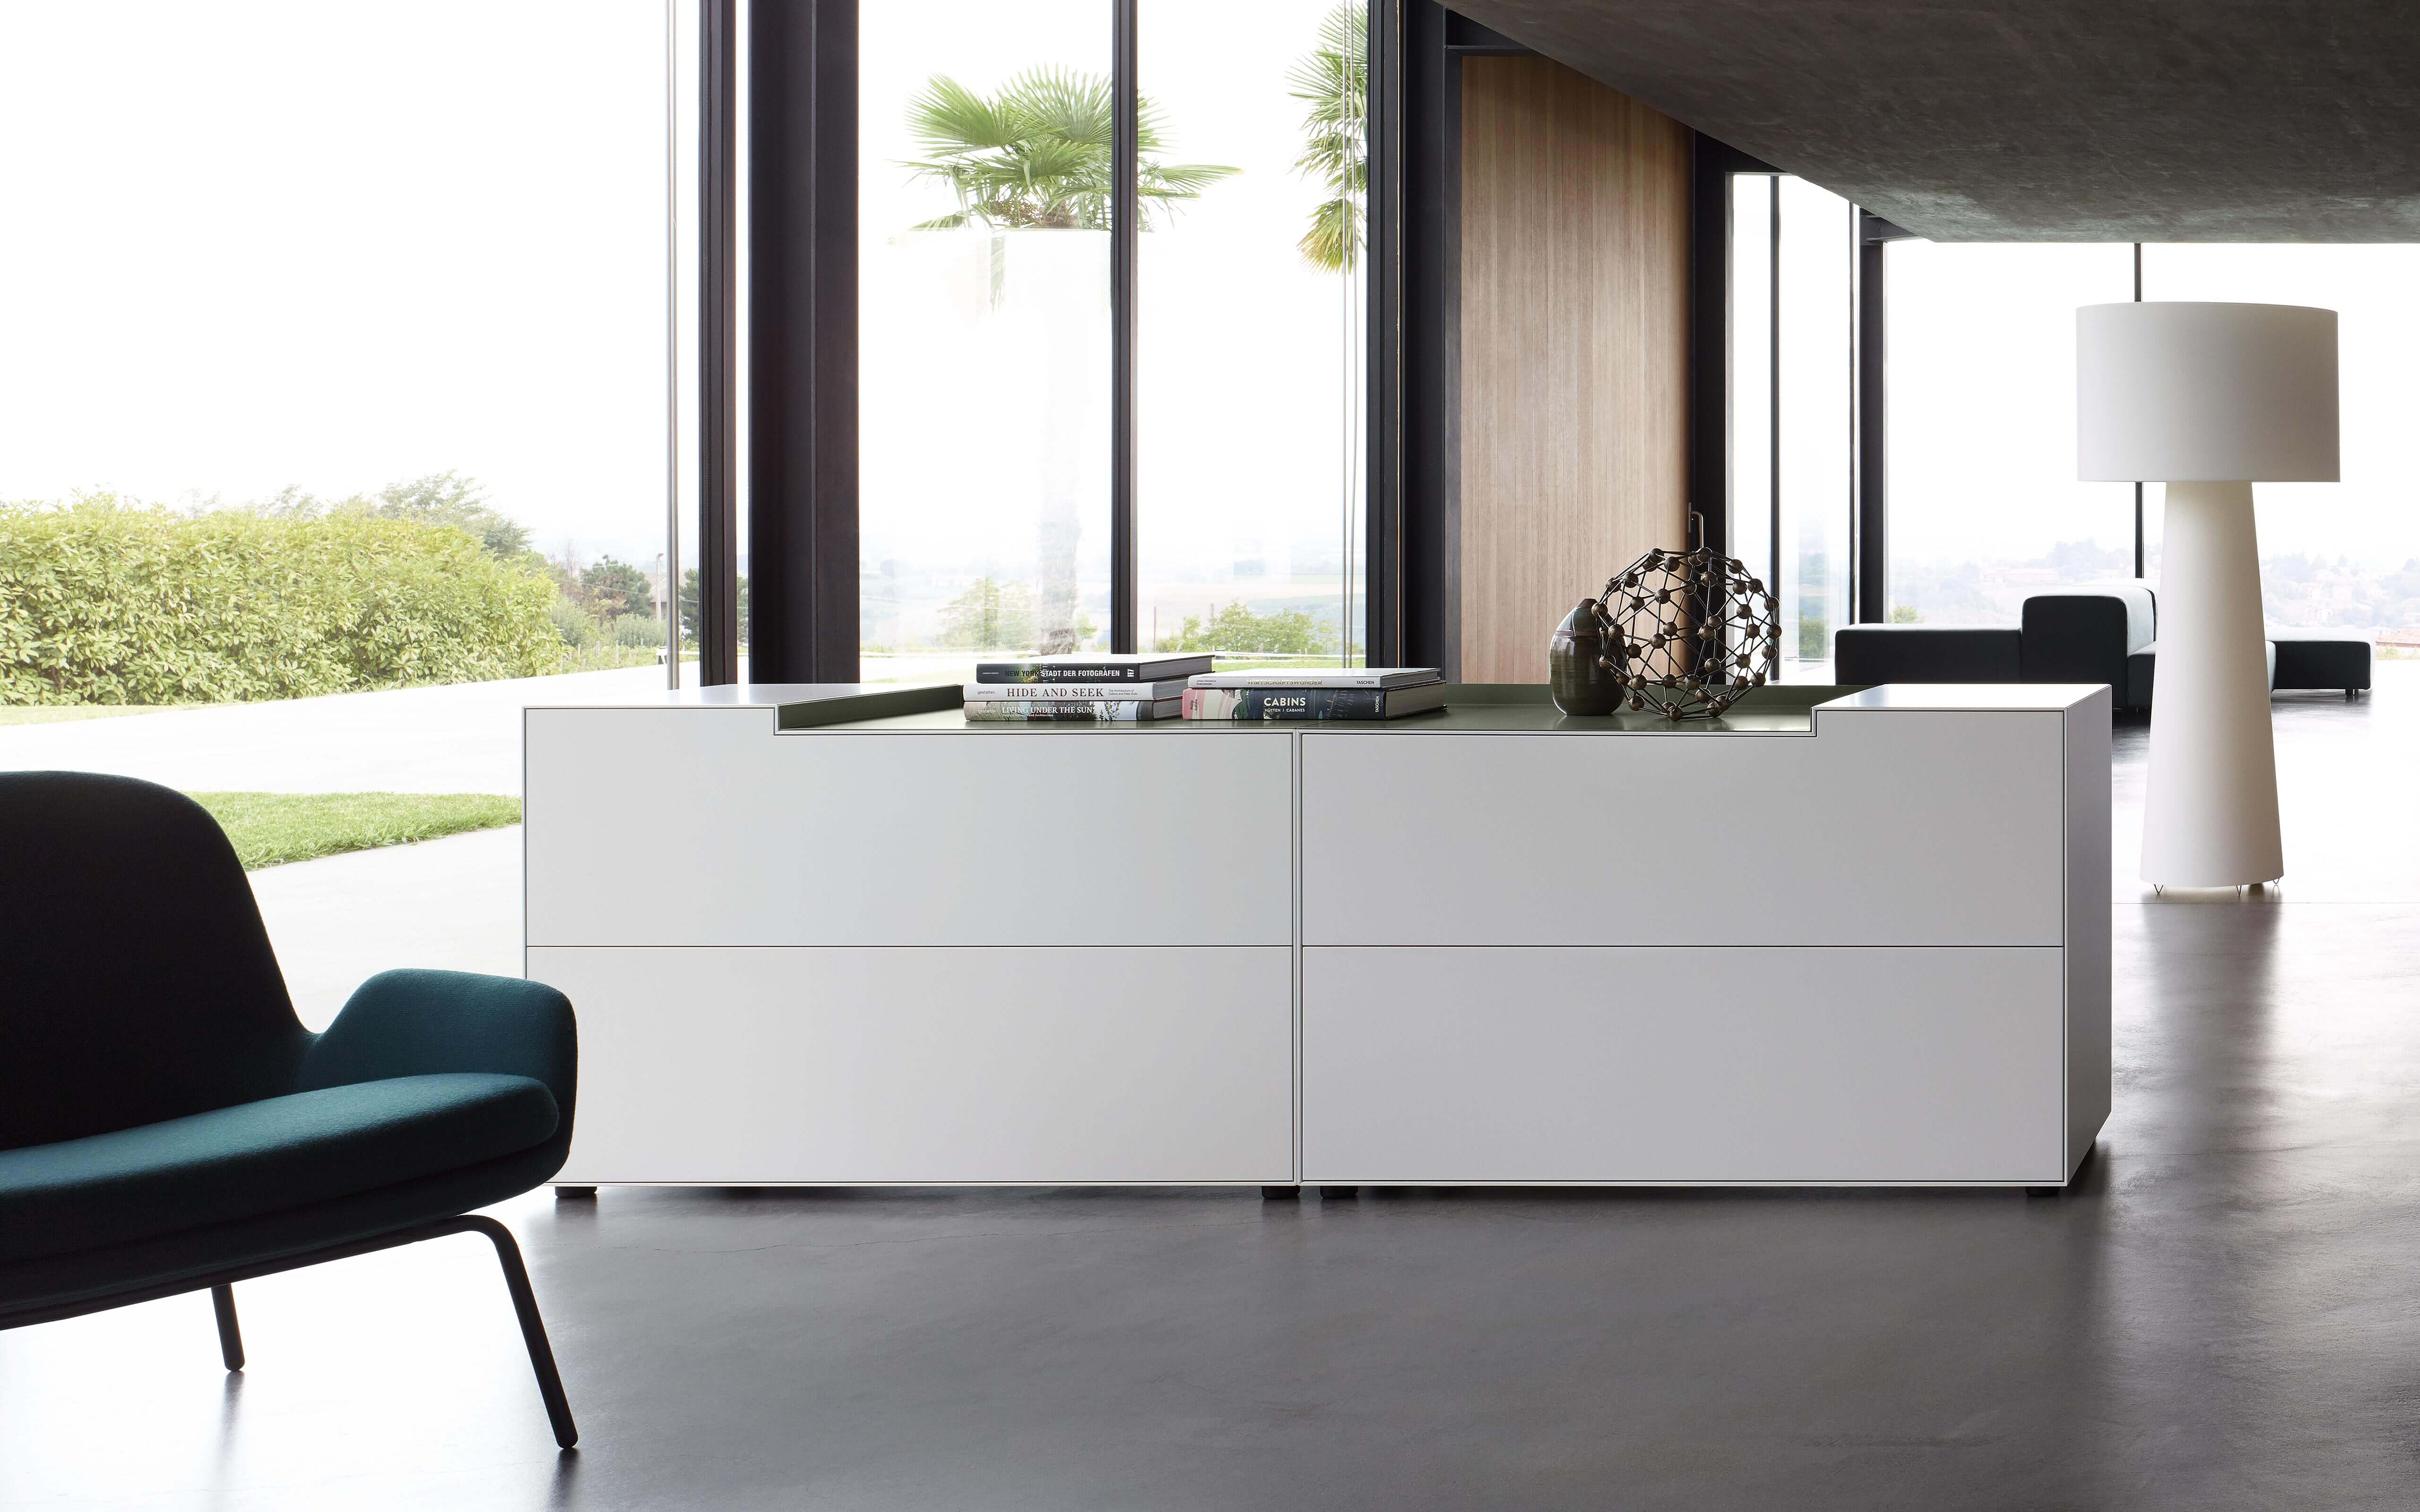 Sideboard 60 Cm Tief Piure Creating Living Space - Sideboard Nex Line Regal